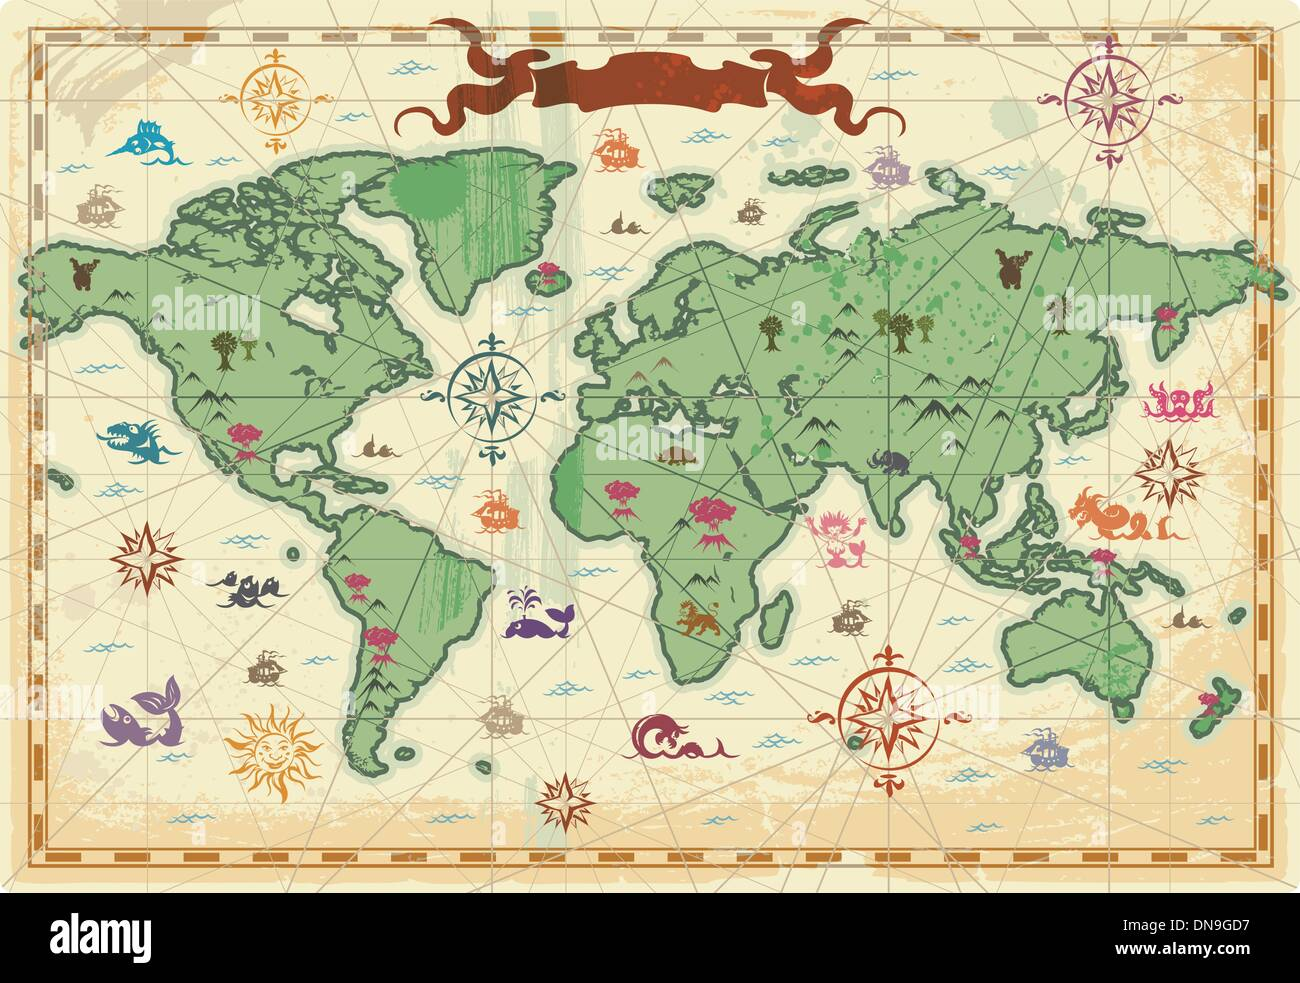 Colorful ancient world map stock vector art illustration vector colorful ancient world map gumiabroncs Gallery